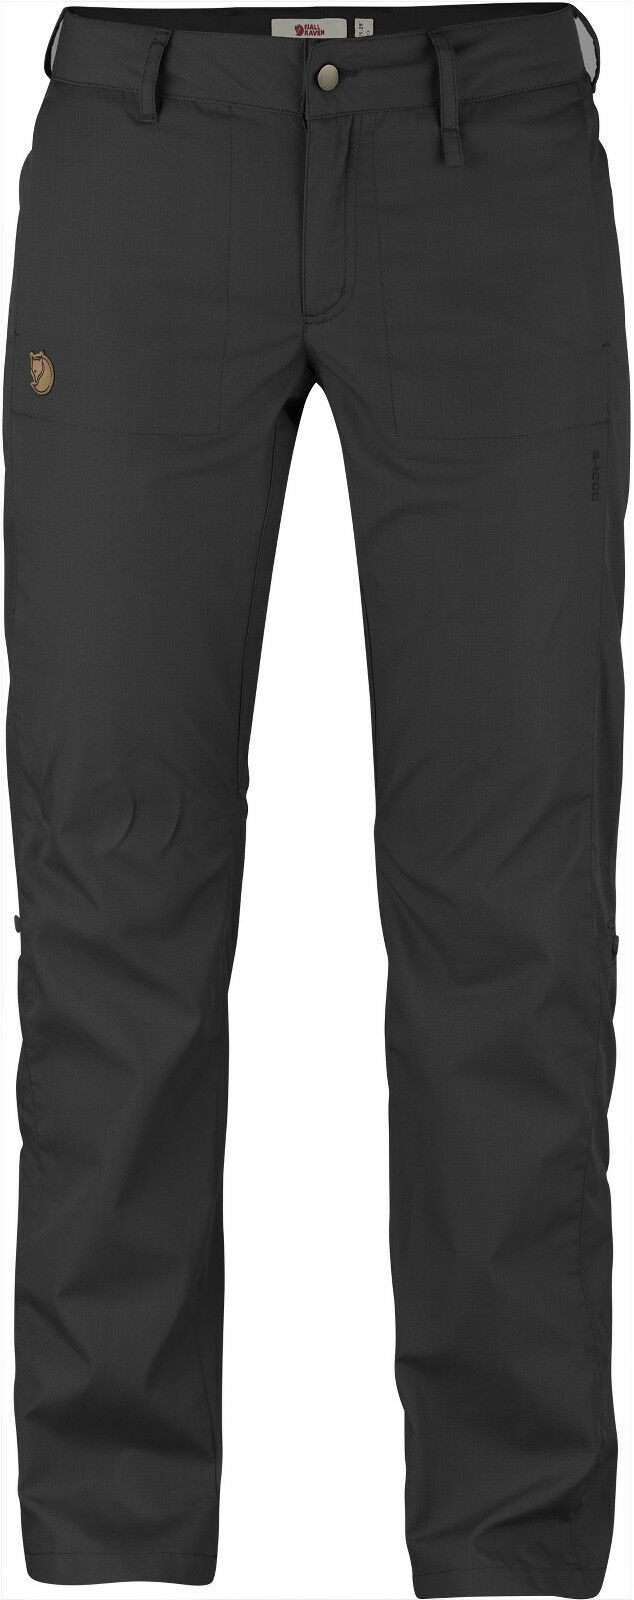 Fjällräven Abisko Shade Trousers 89810  dark grey  G-1000 Air Hose Damenhose